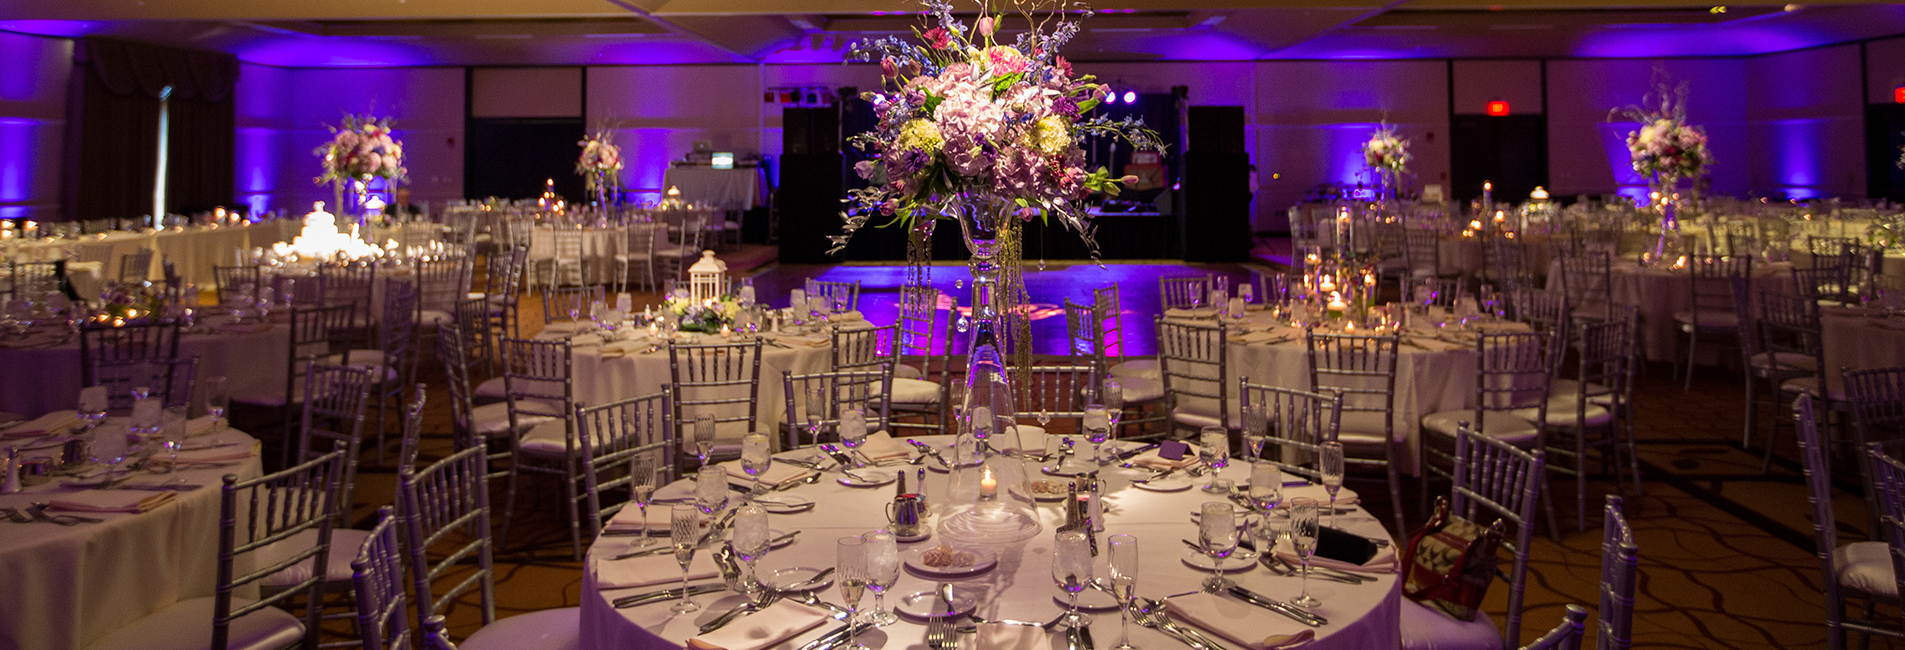 event space in south bend indiana